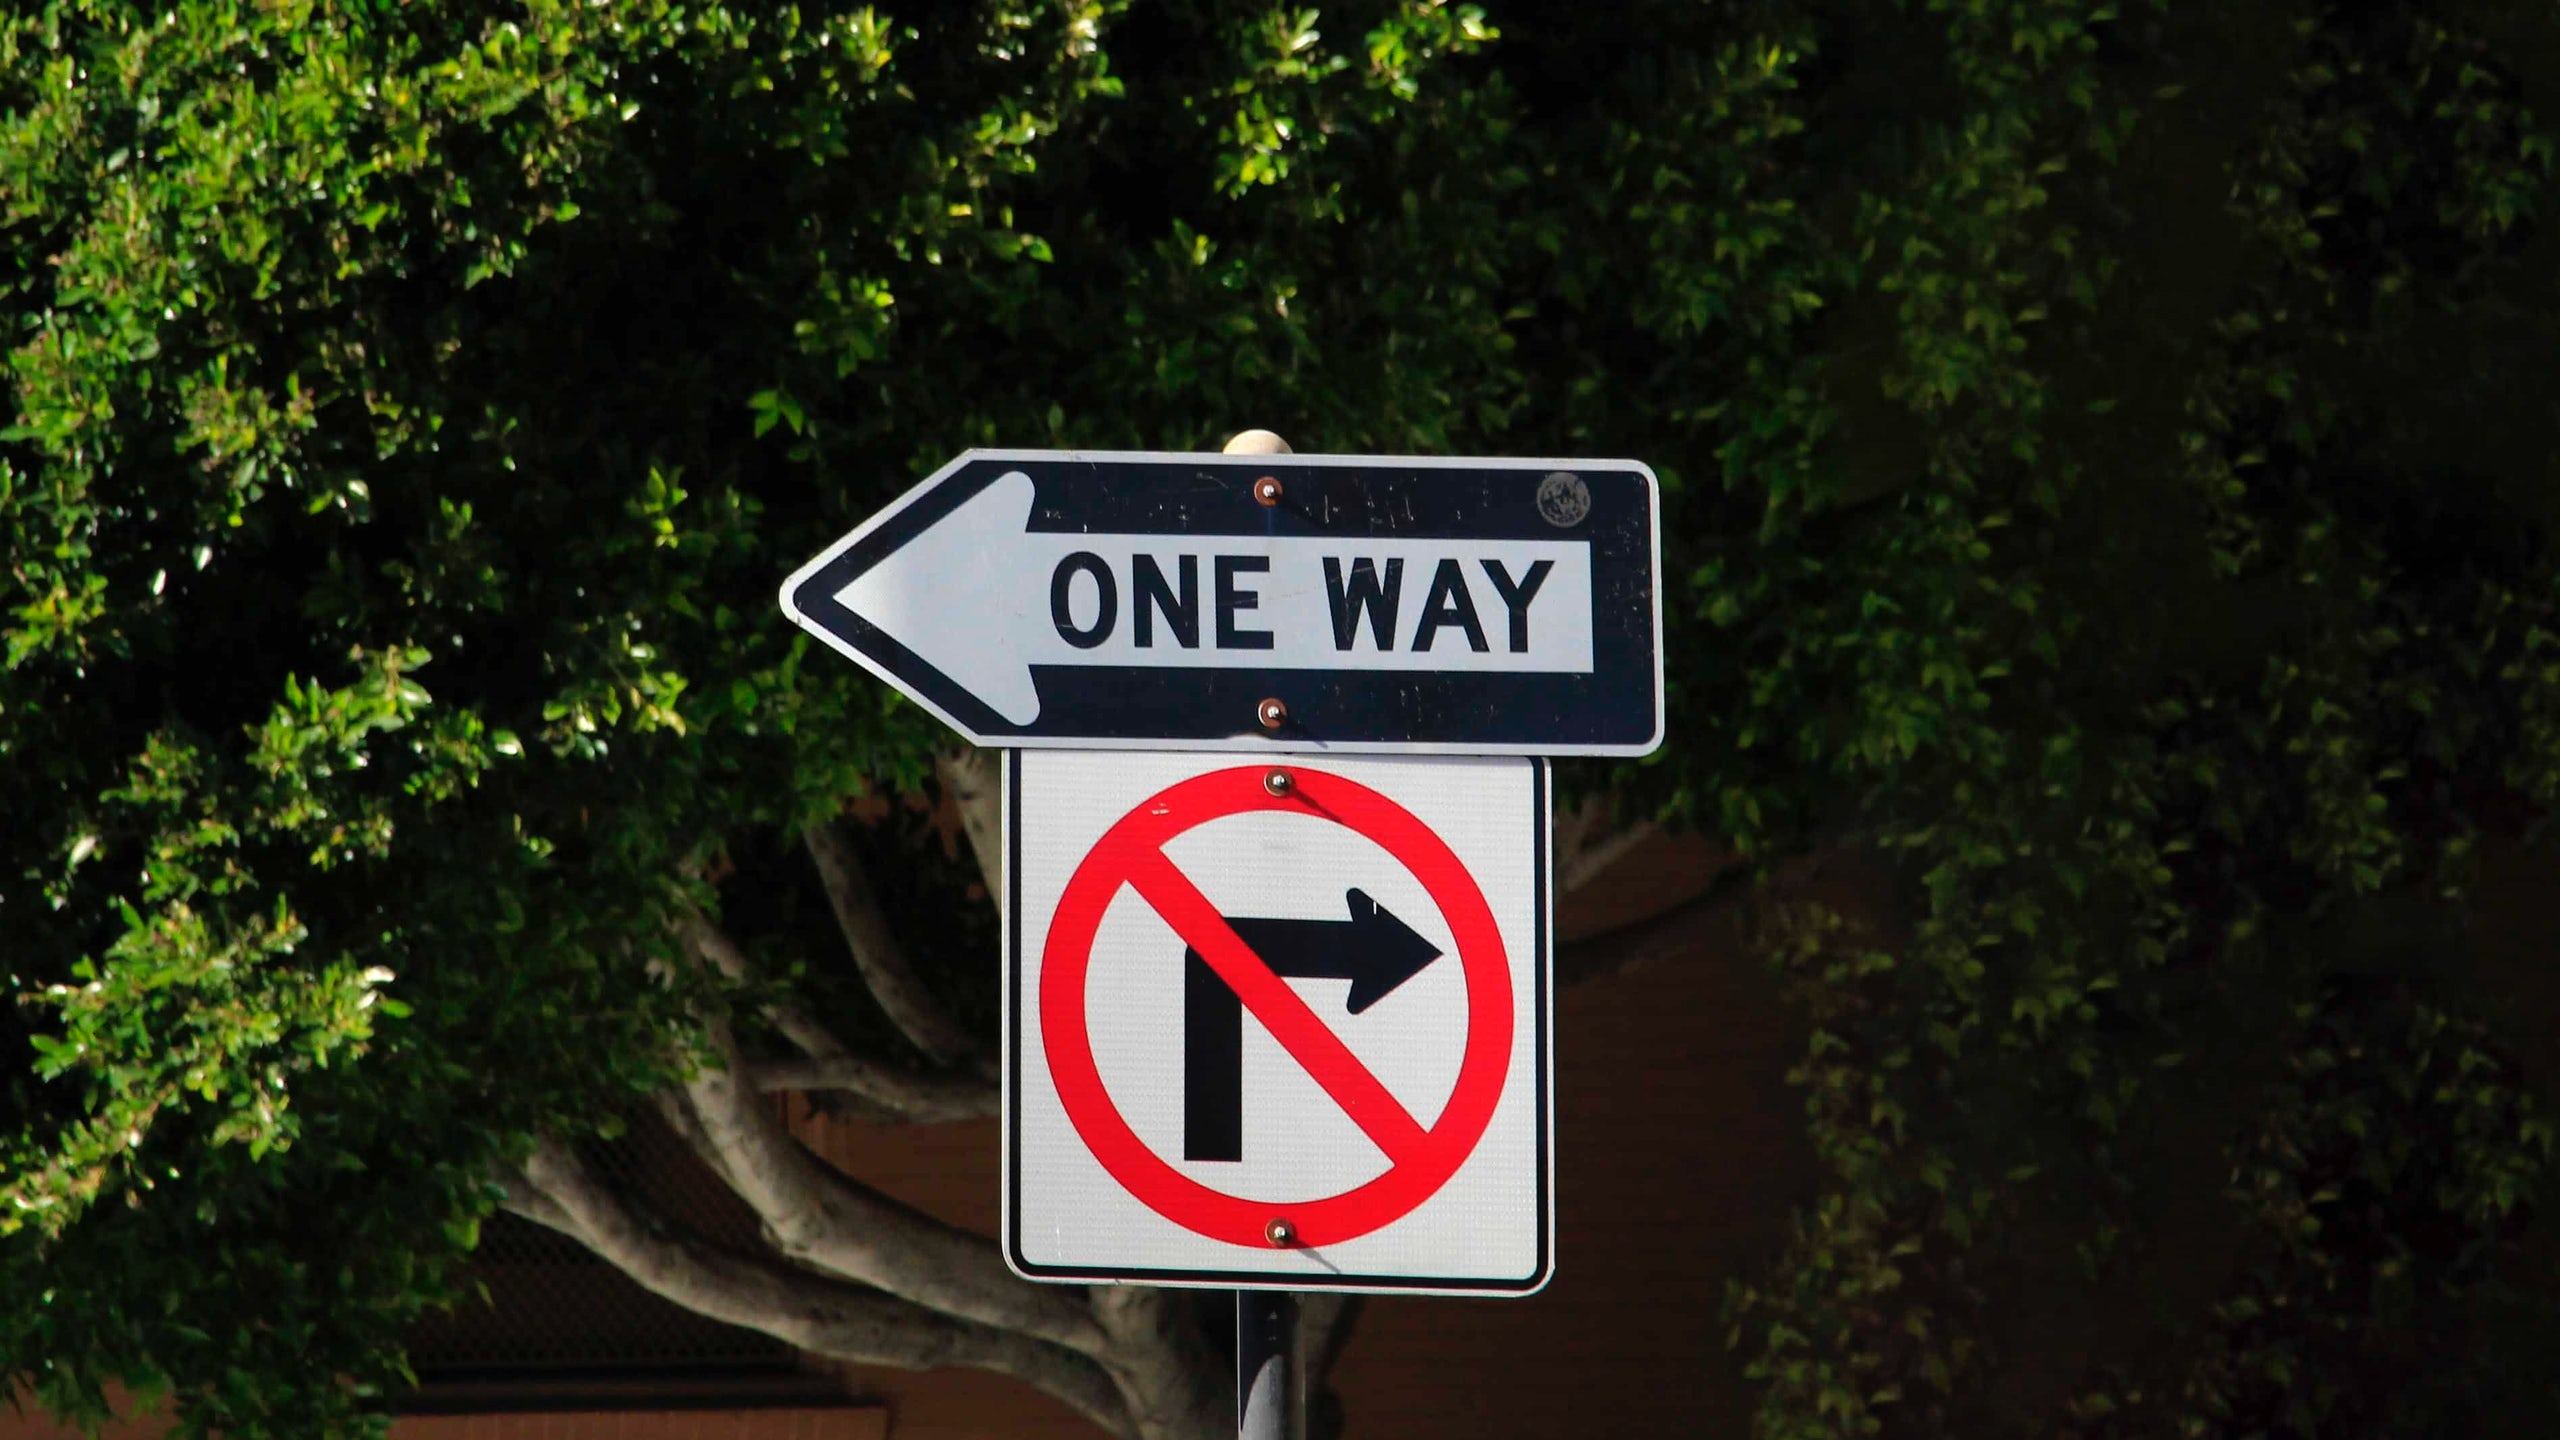 One way street and no turning right sign